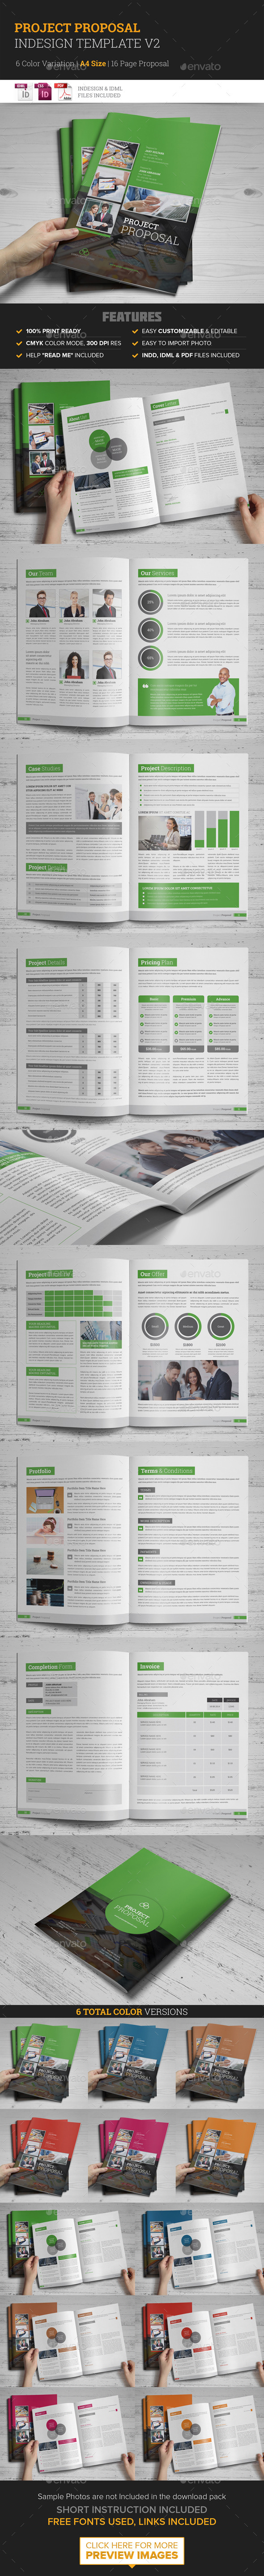 GraphicRiver Project Proposal InDesign Template v2 10277170